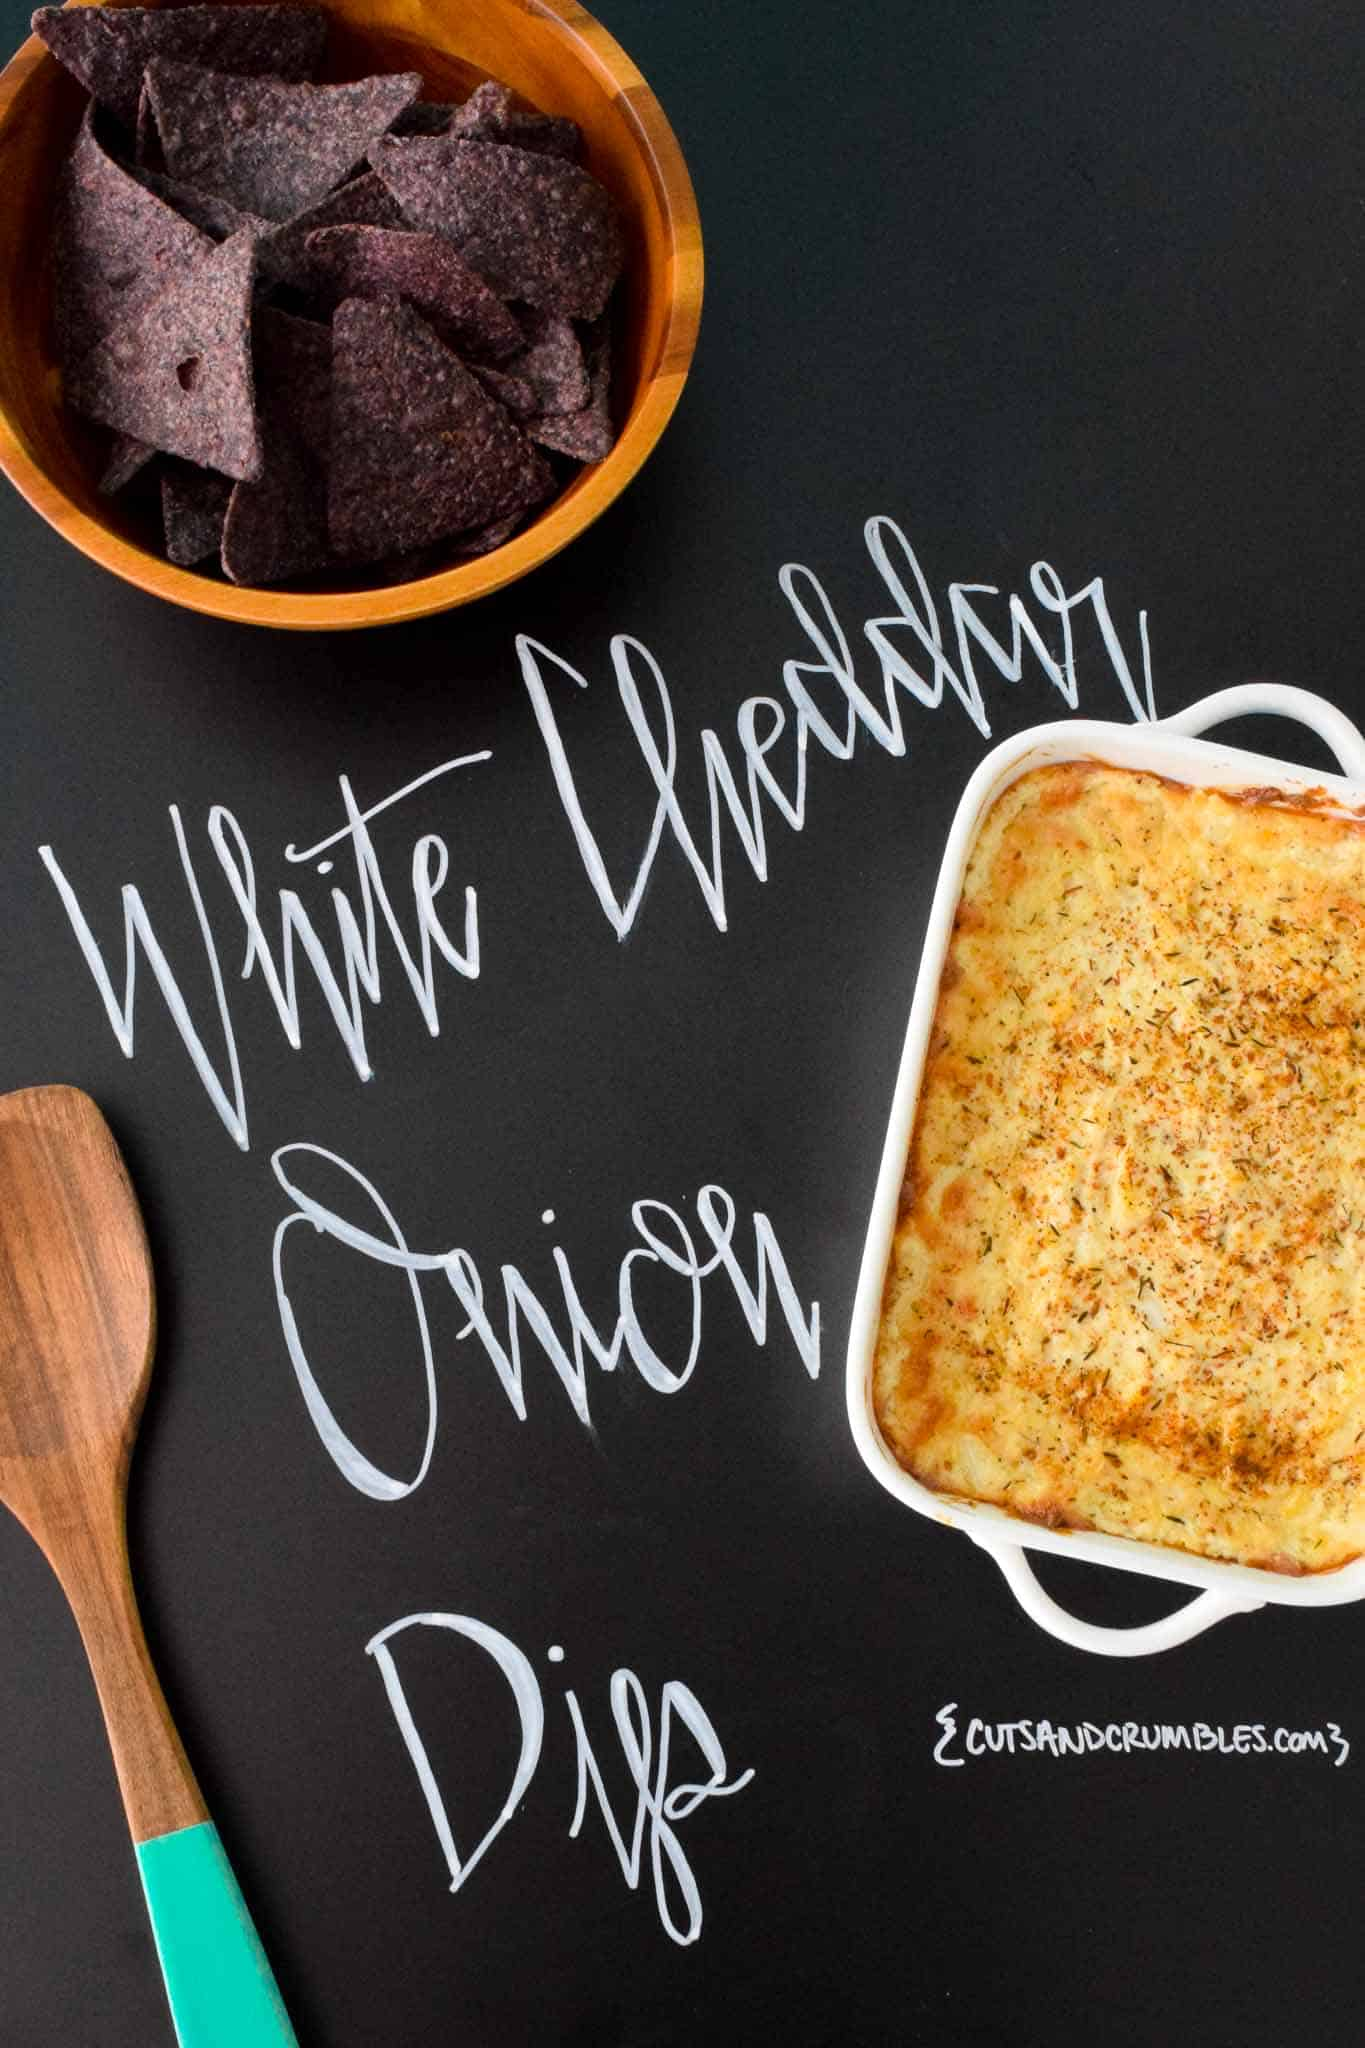 White Cheddar Onion Dip with title written on chalkboard